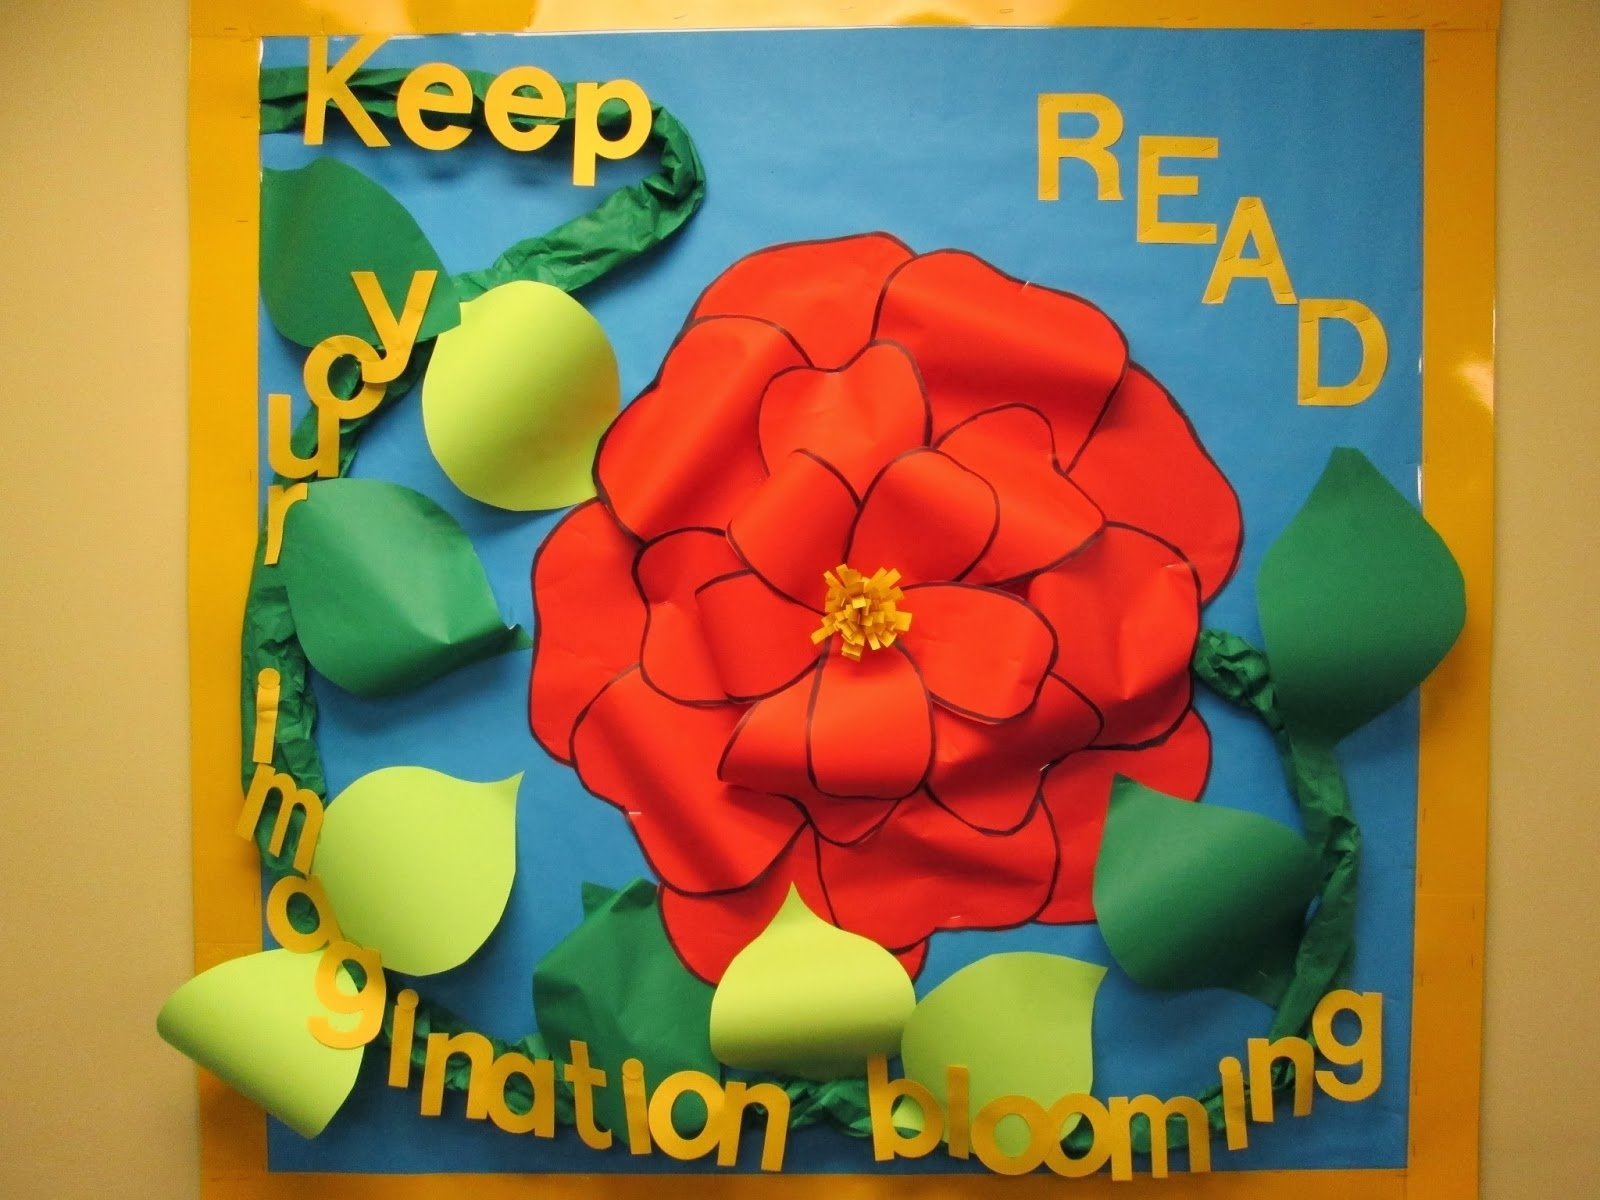 10 Most Recommended Bulletin Board Ideas For March lorris school library blog spring march april library bulletin 1 2021